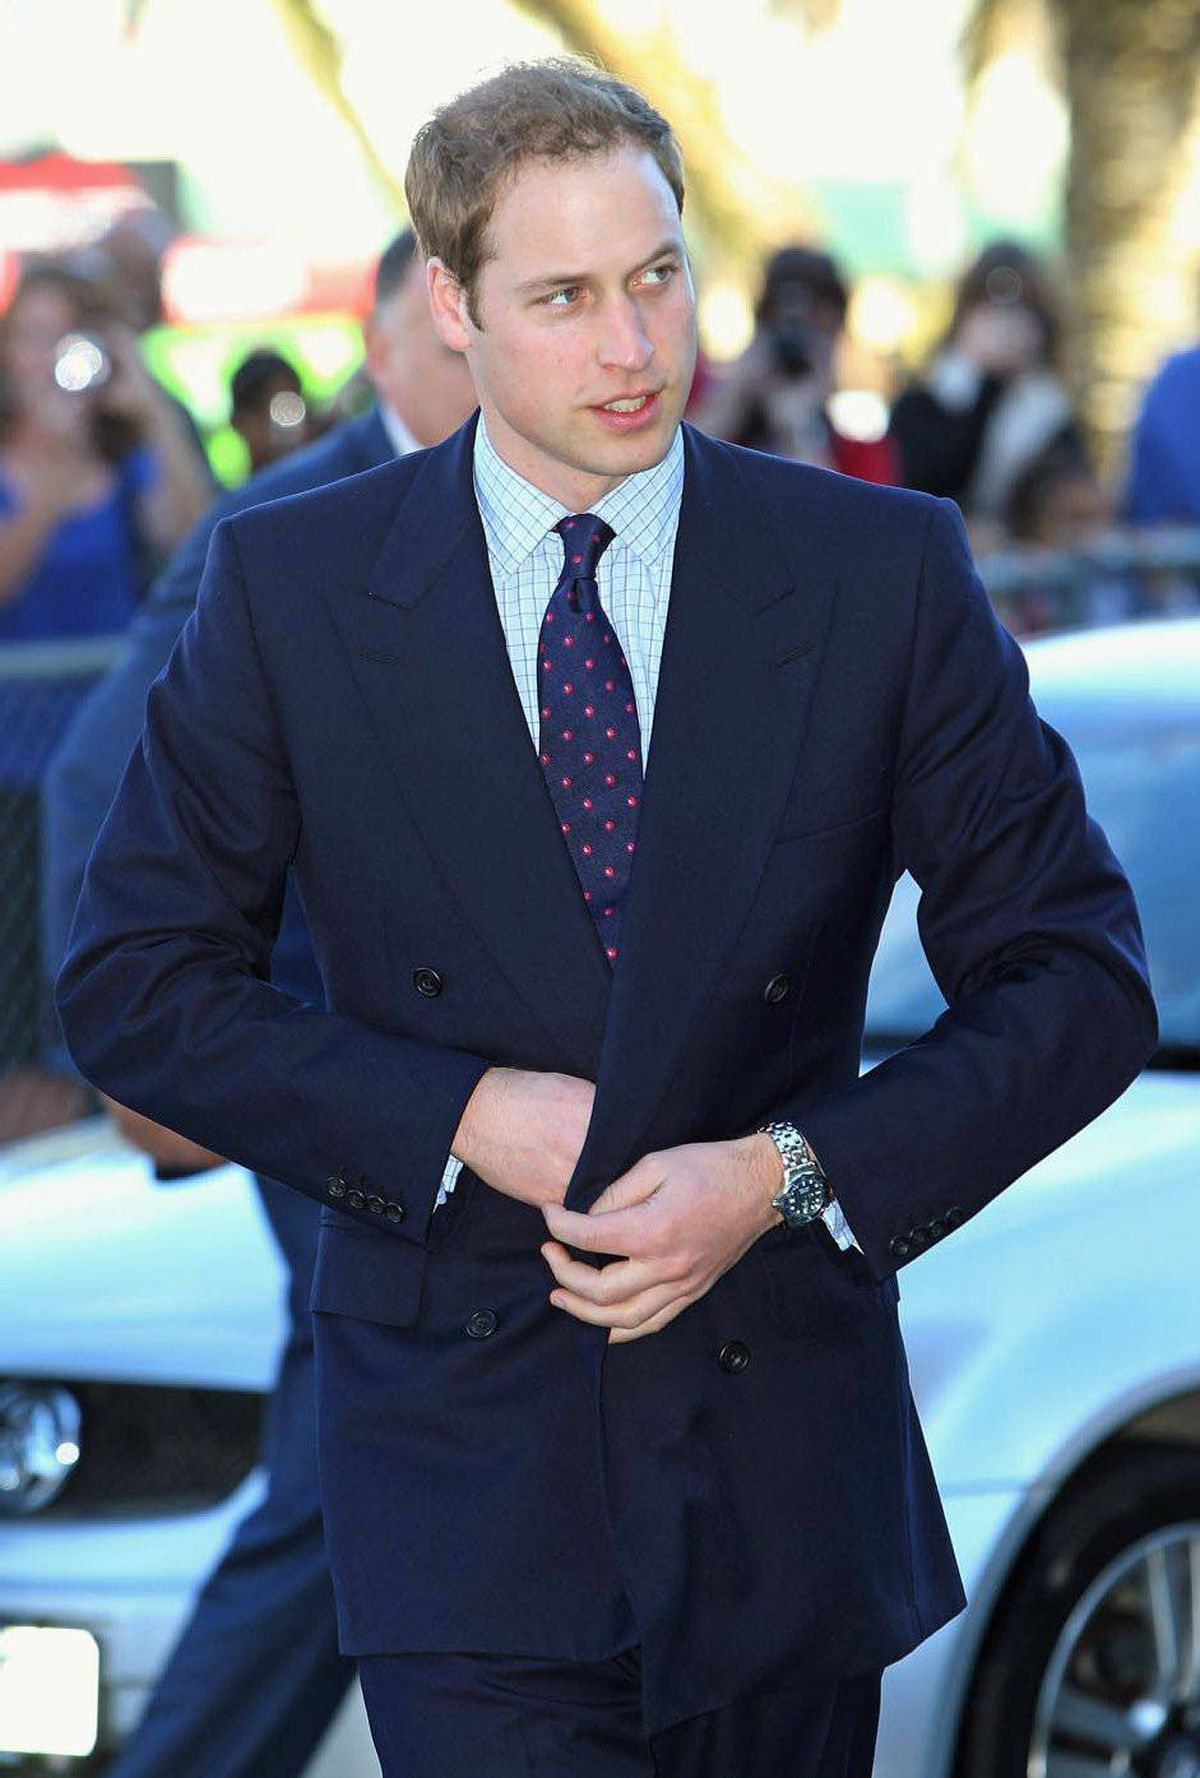 Prince William prepares to tour a hospital in Wellington, N.Z., Jan. 19, 2010.